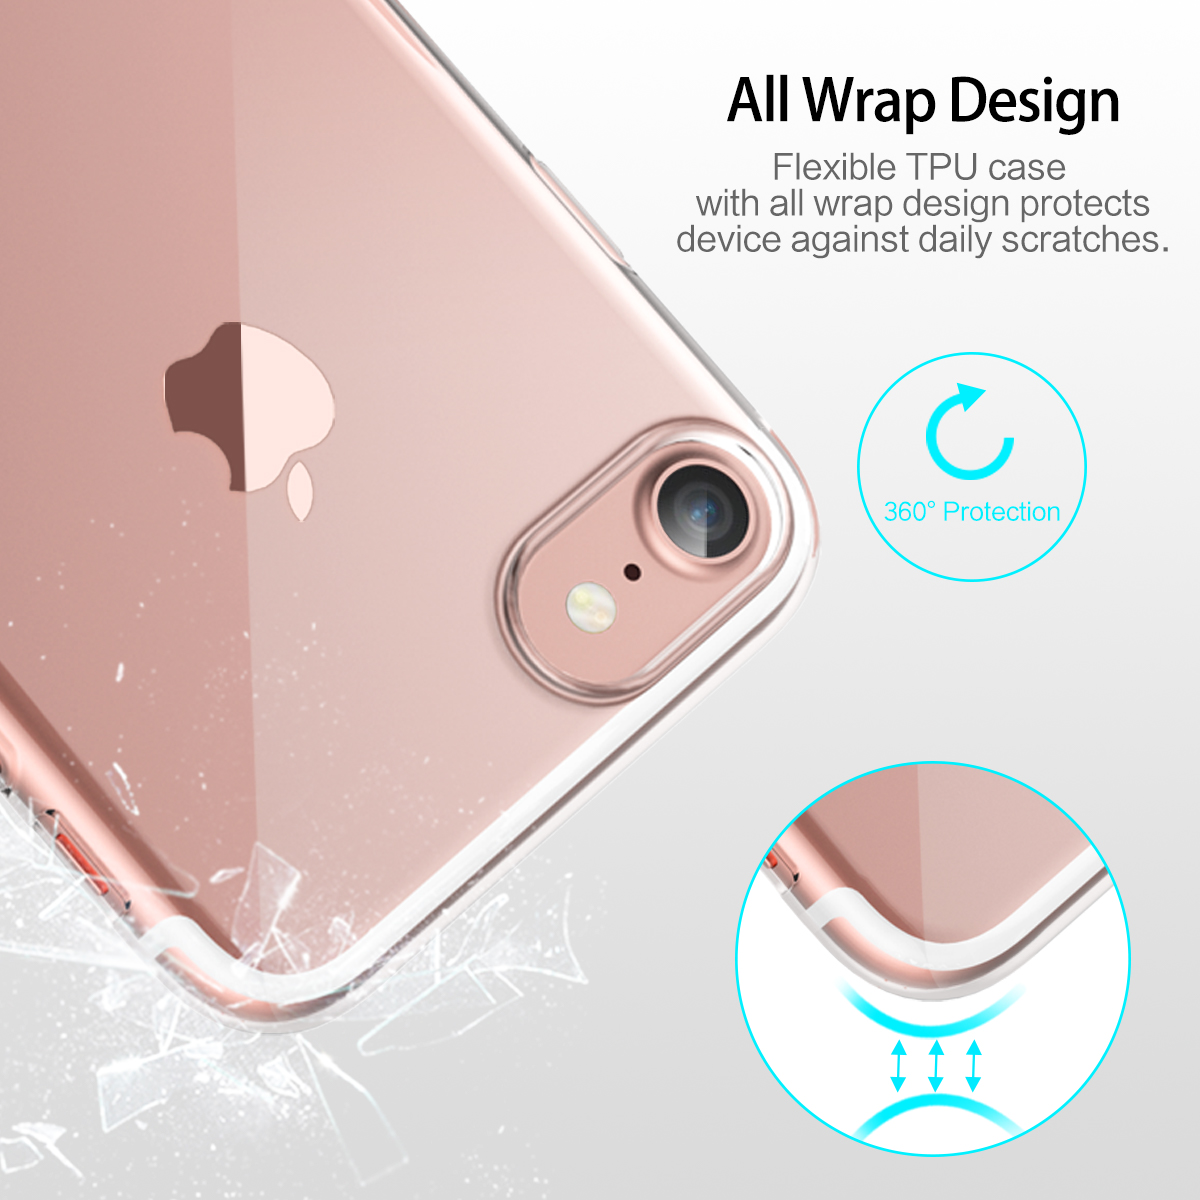 Rock Crystal Kickstand TPU Case With Dust Plug For iPhone 7/8